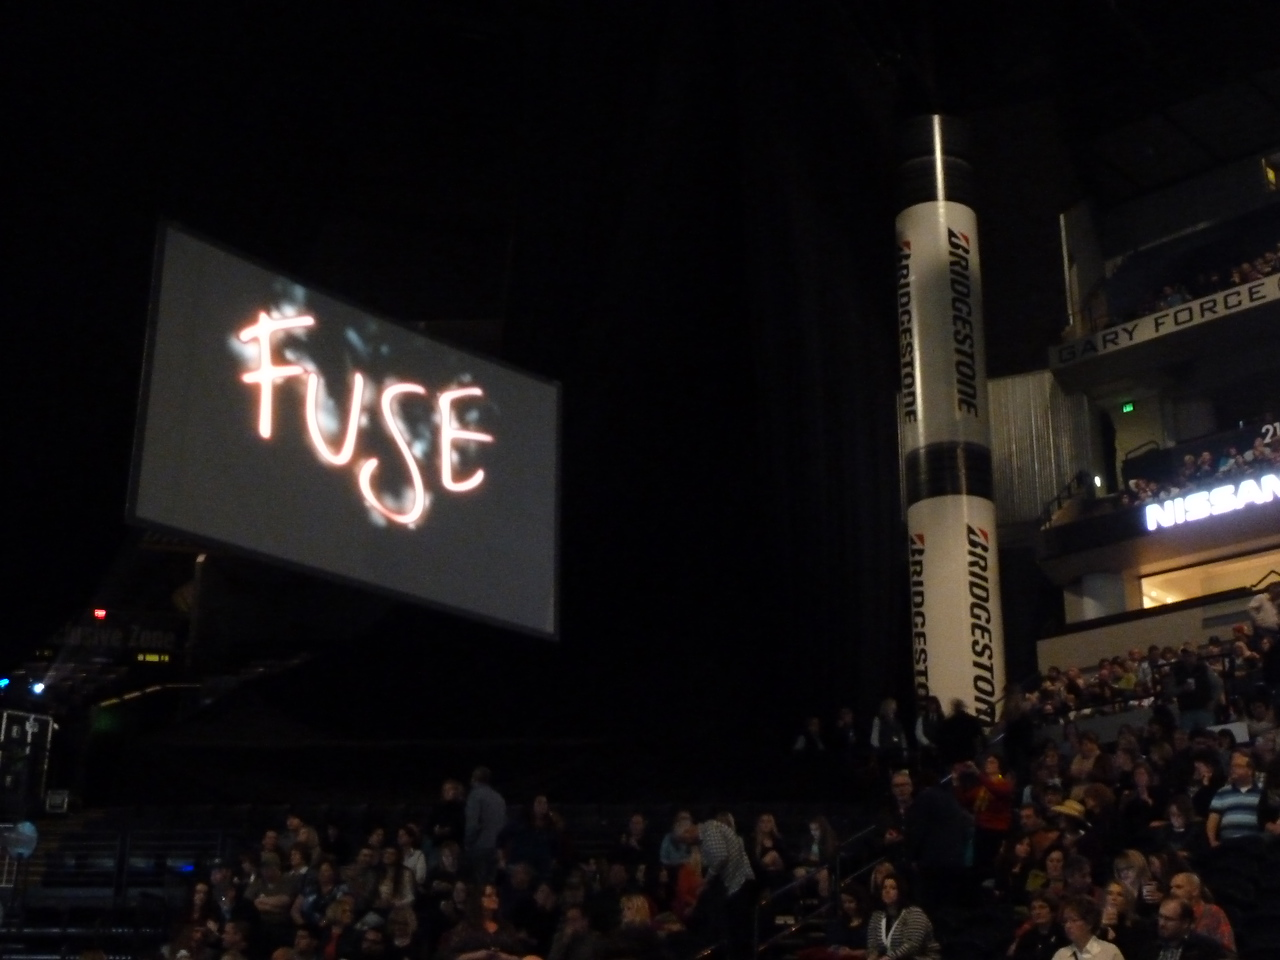 Light The Fuse Tour ~ Final night at Bridgestone Arena in Nashville, TN